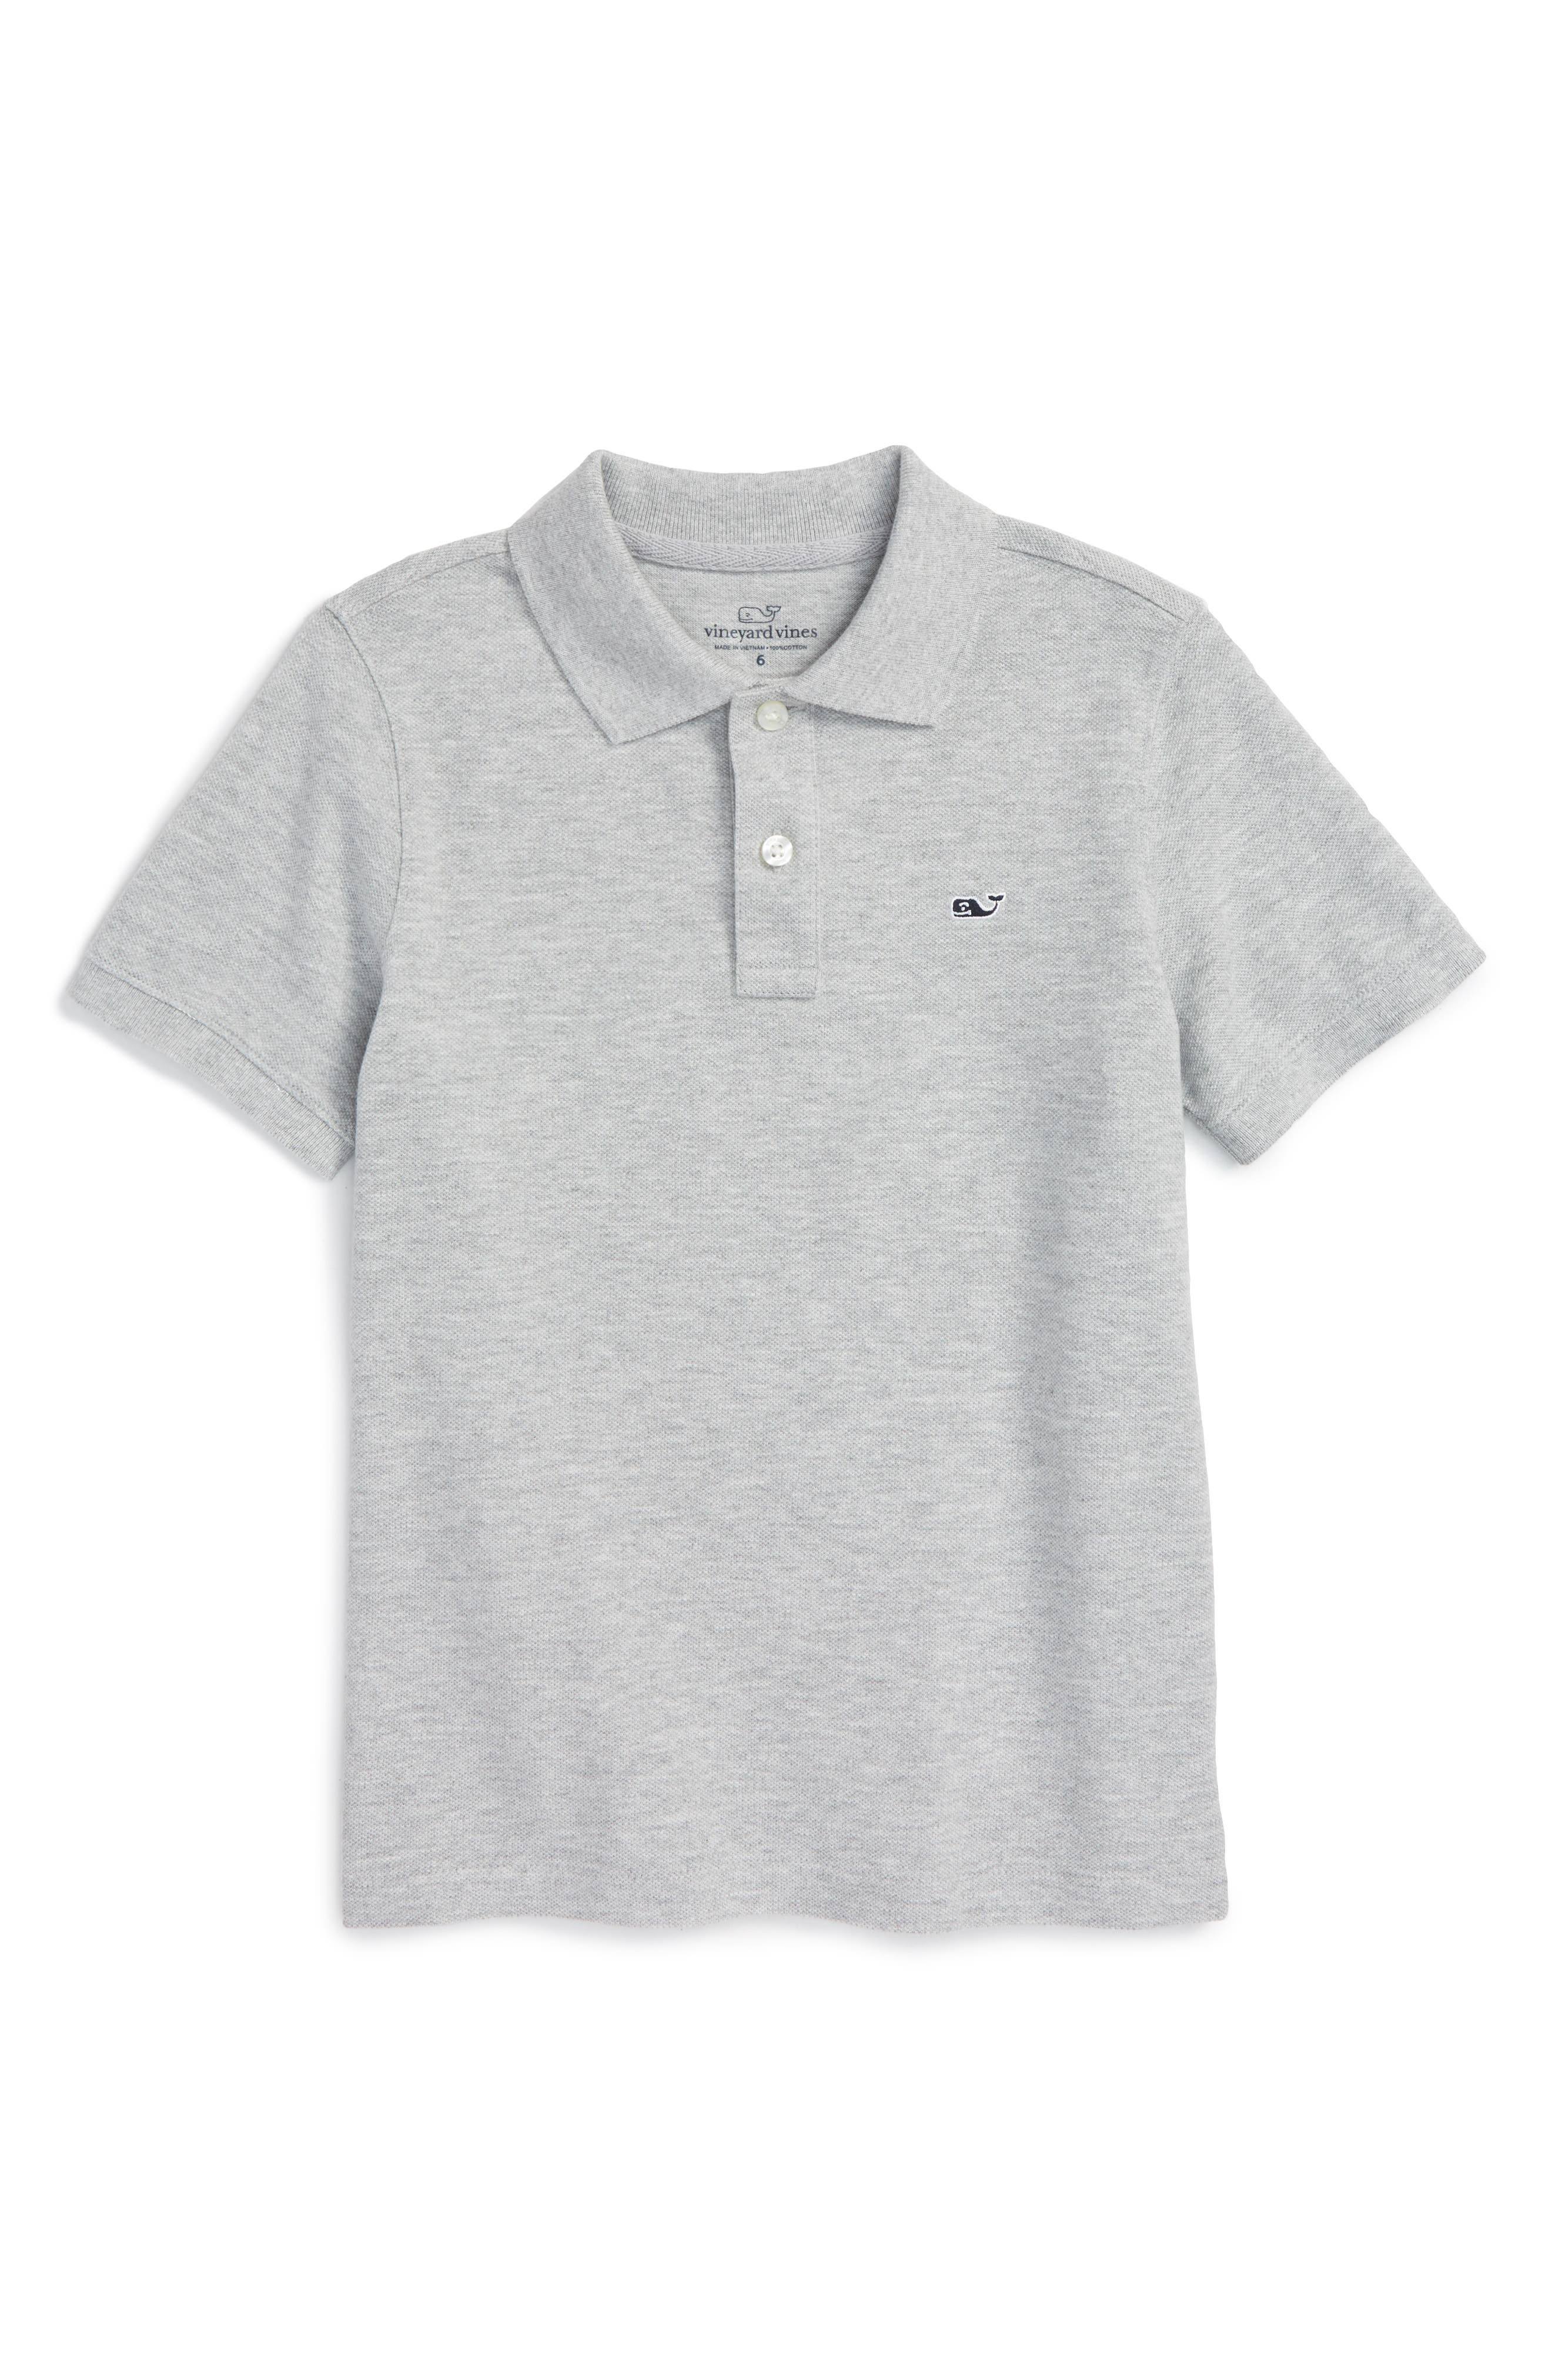 Vineyard Vines Piqué Cotton Polo (Toddler Boys & Little Boys)